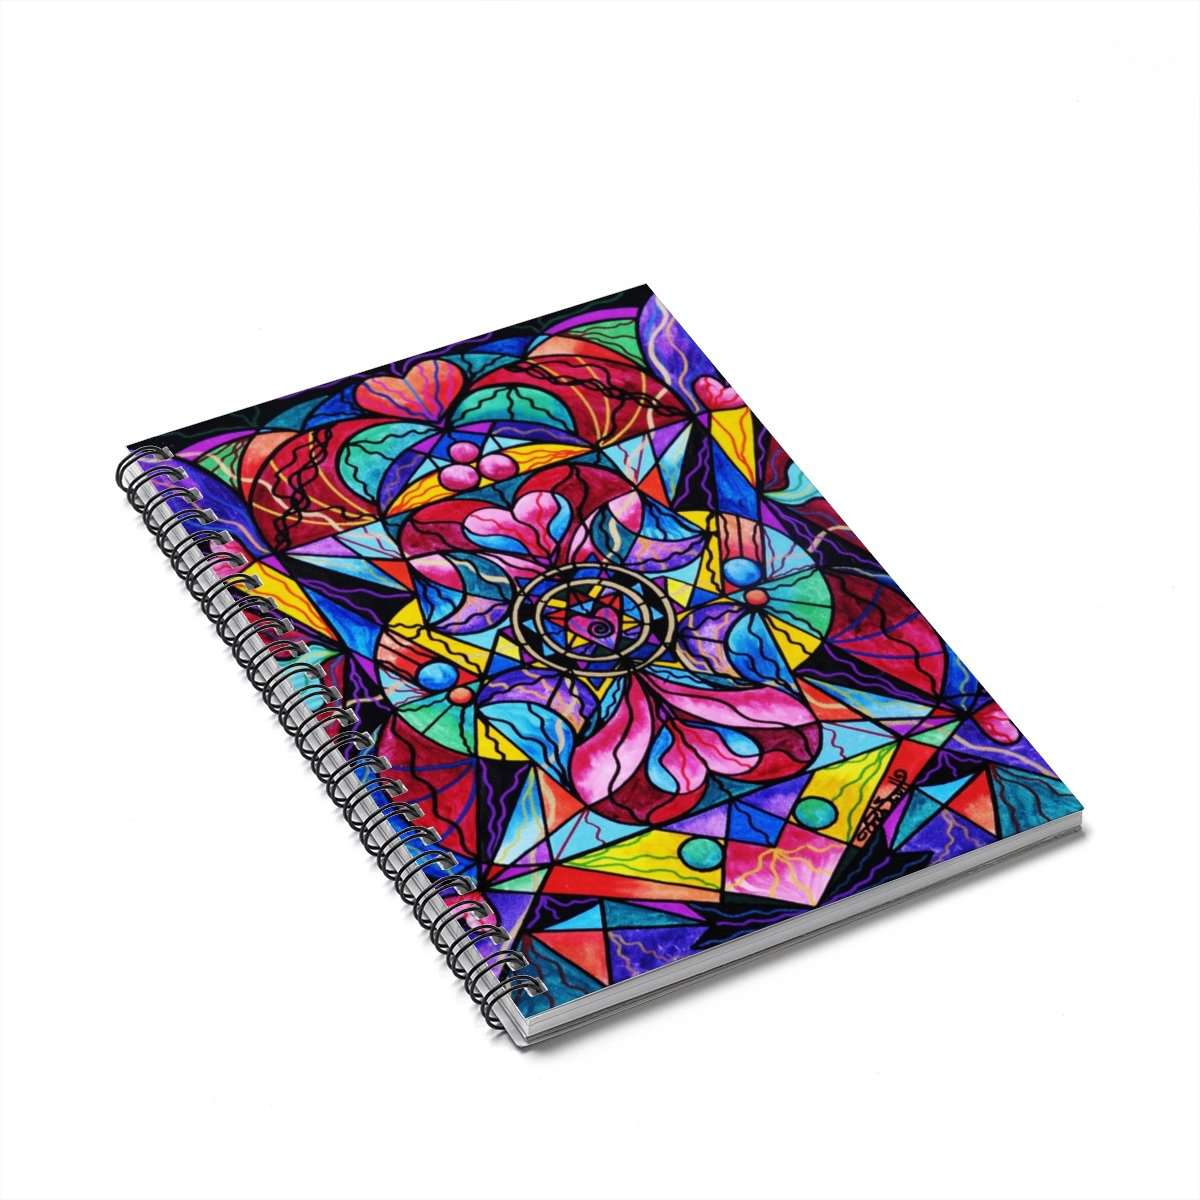 Blue Ray Self Love Grid - Spiral Notebook